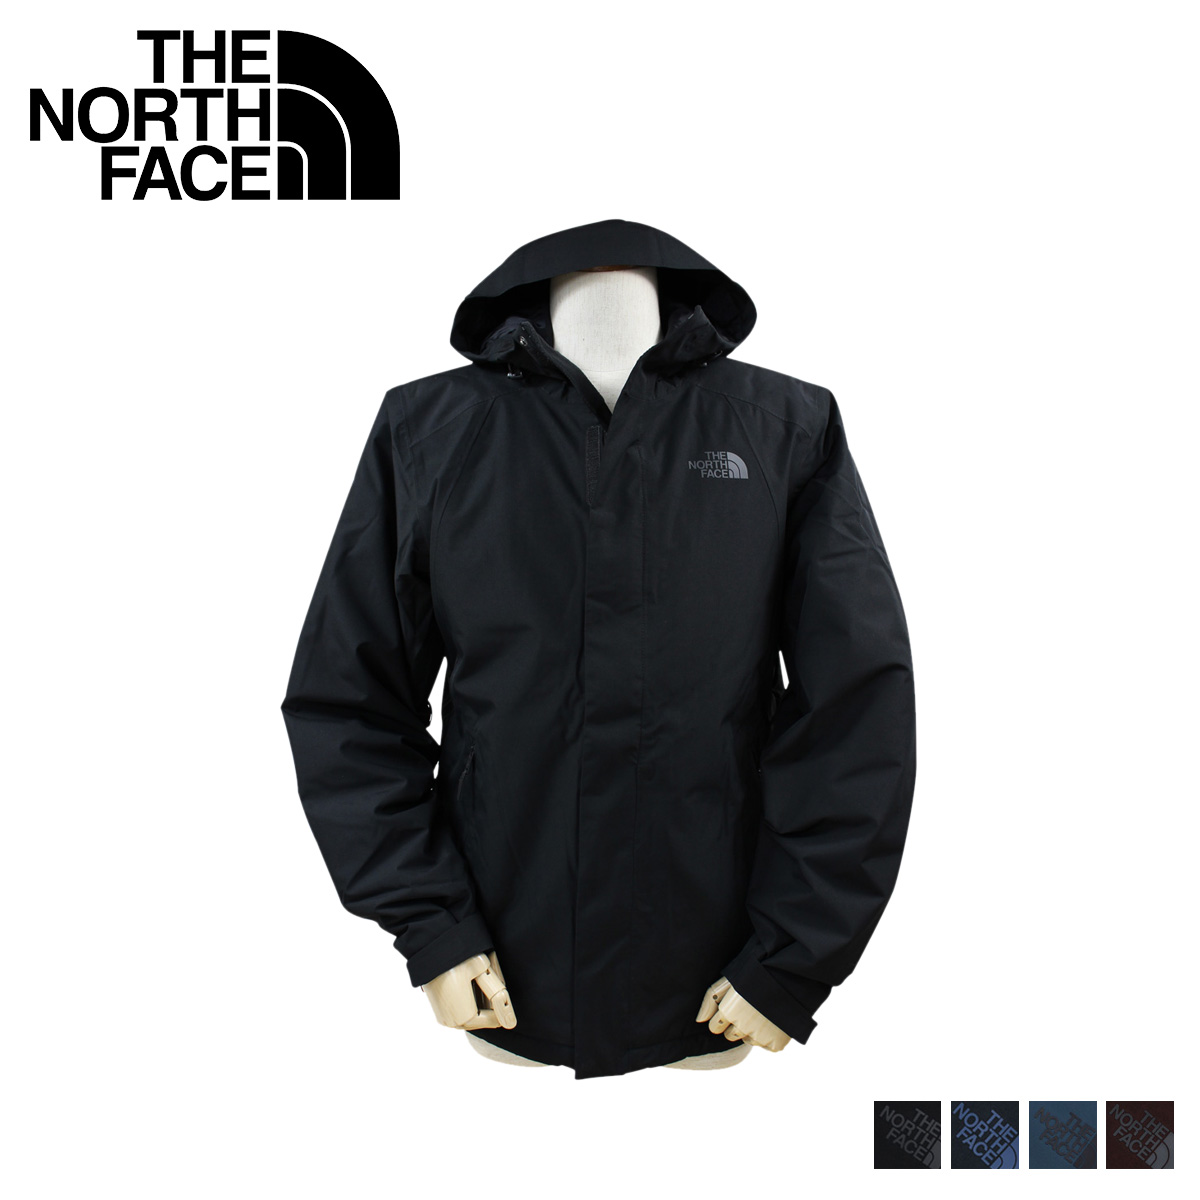 75139d774 Shell Jacket fleece MEN'S INLUX INSULATED JACKET NF0A2TBR jacket, North  face THE NORTH FACE [9/21 new in stock]